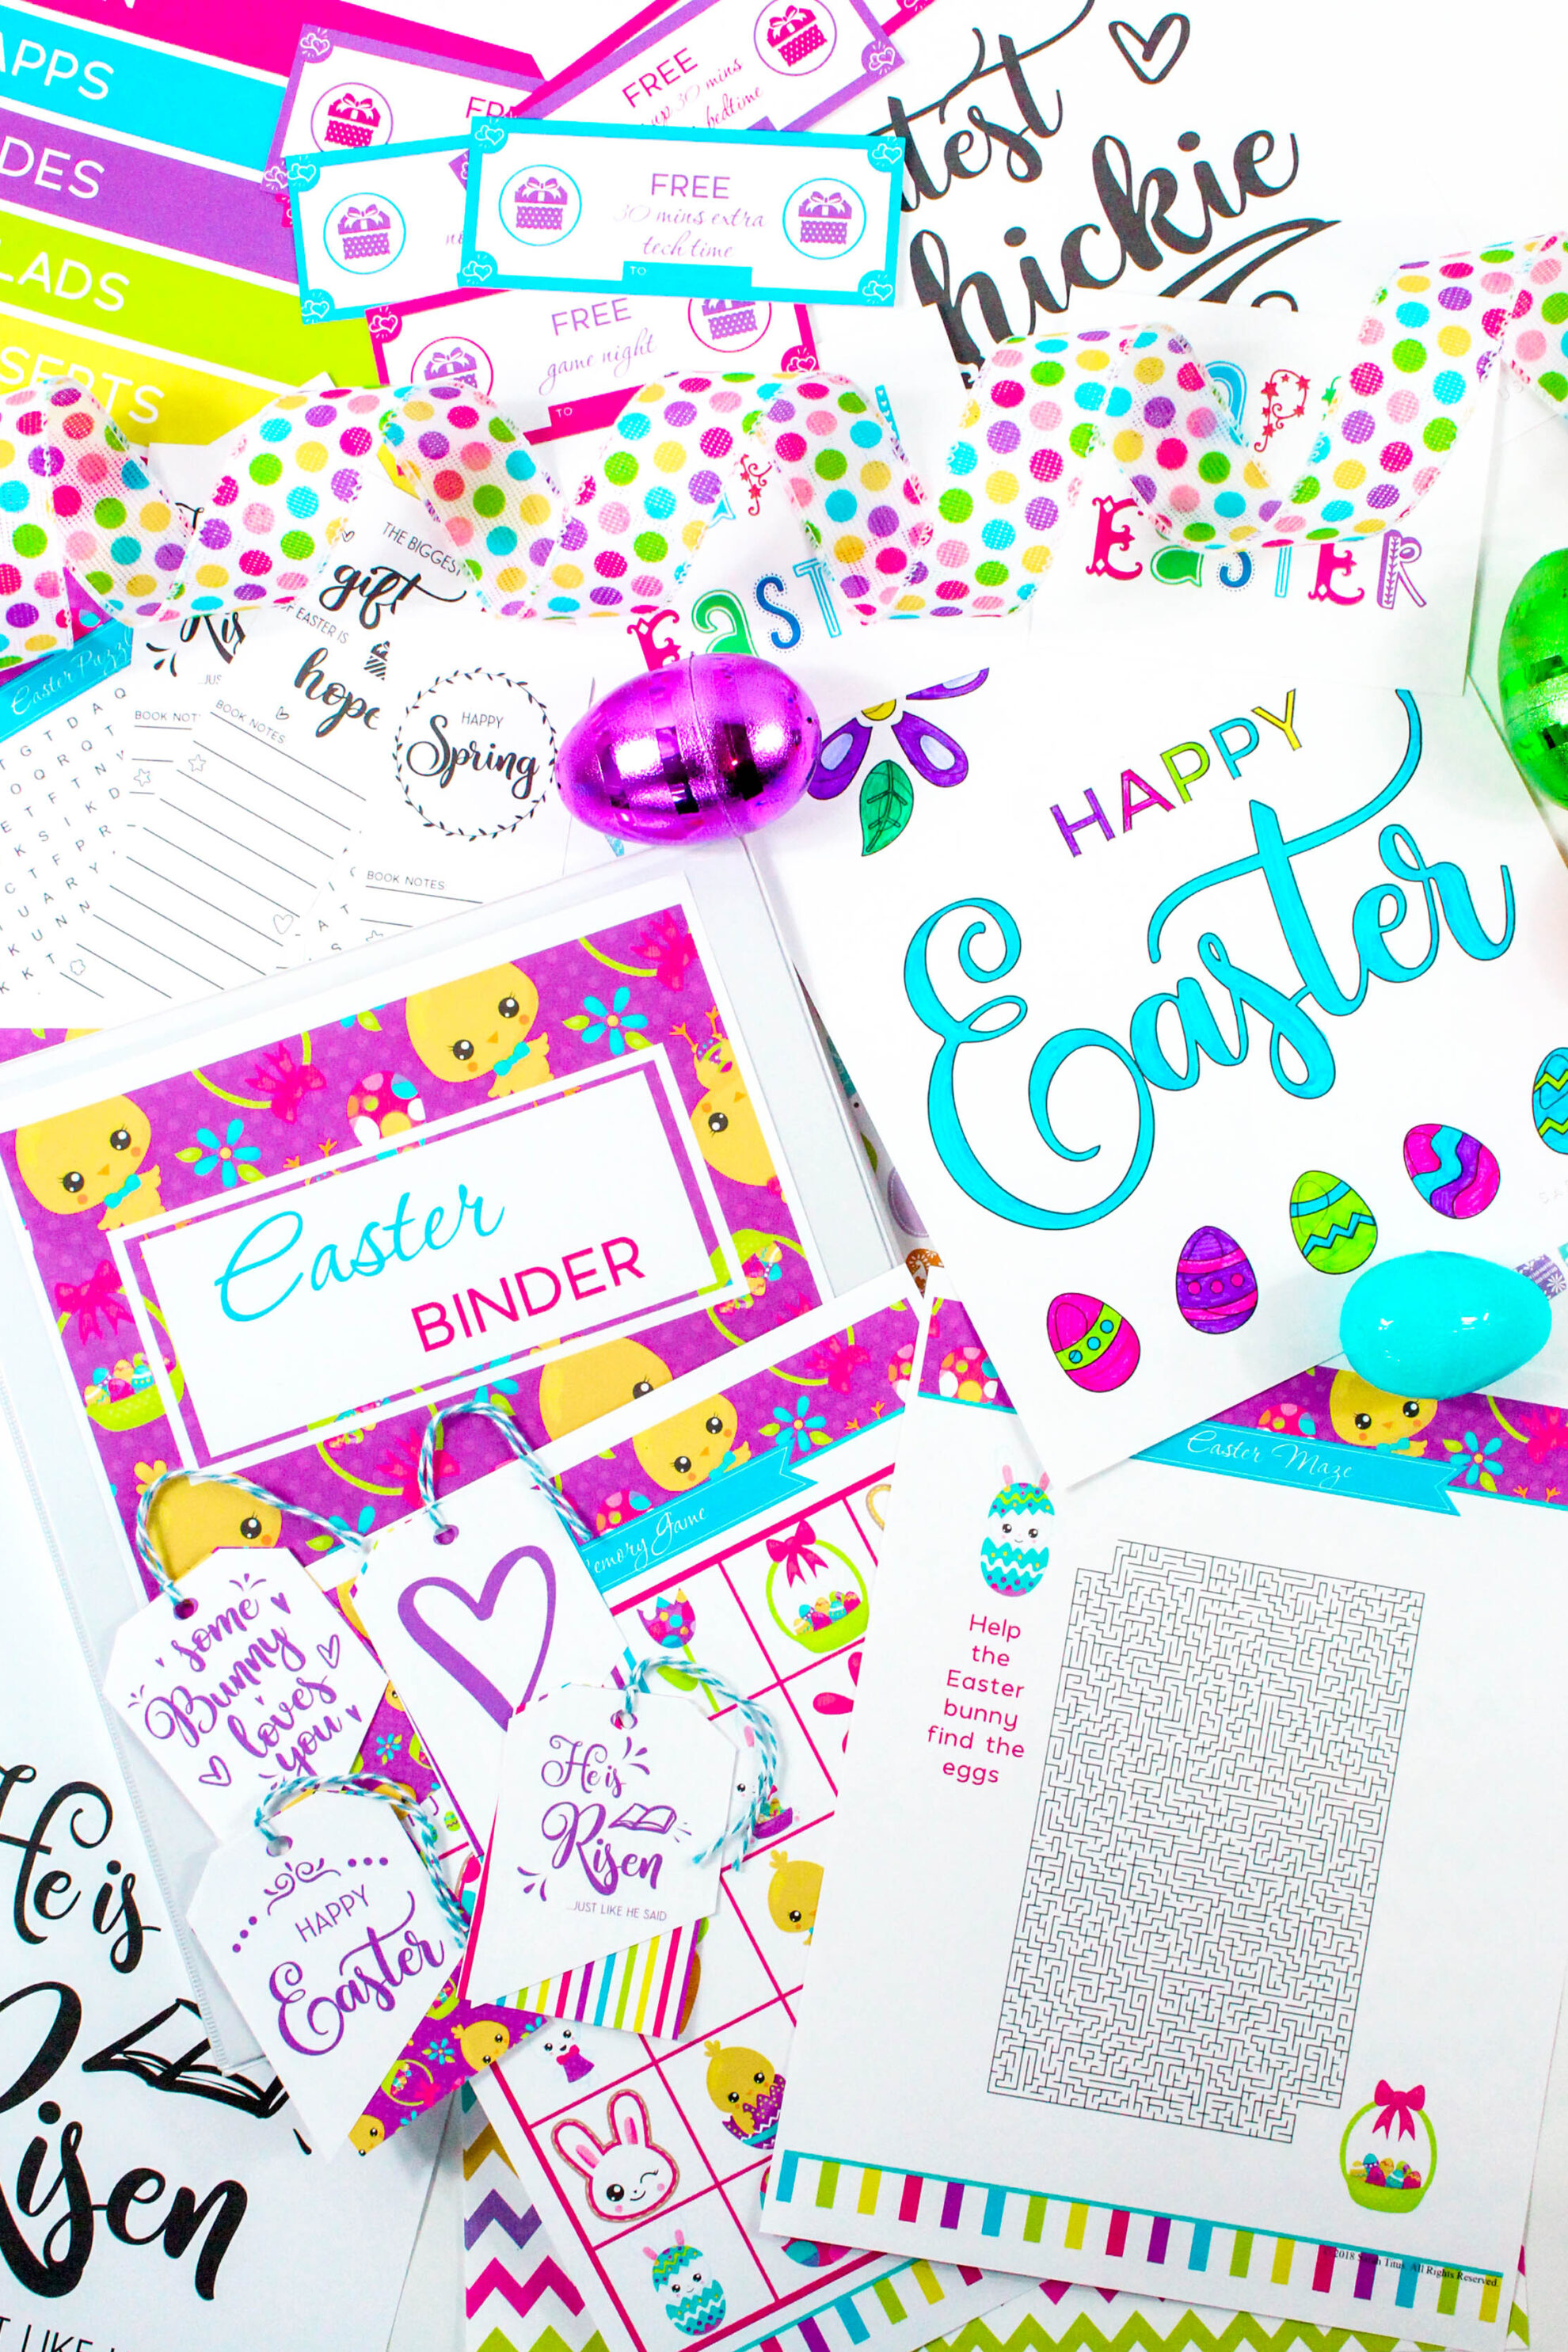 If you're an organization freak like me who just loves having everything all nice and tidy in one spot, this Easter binder free printables set is for you!